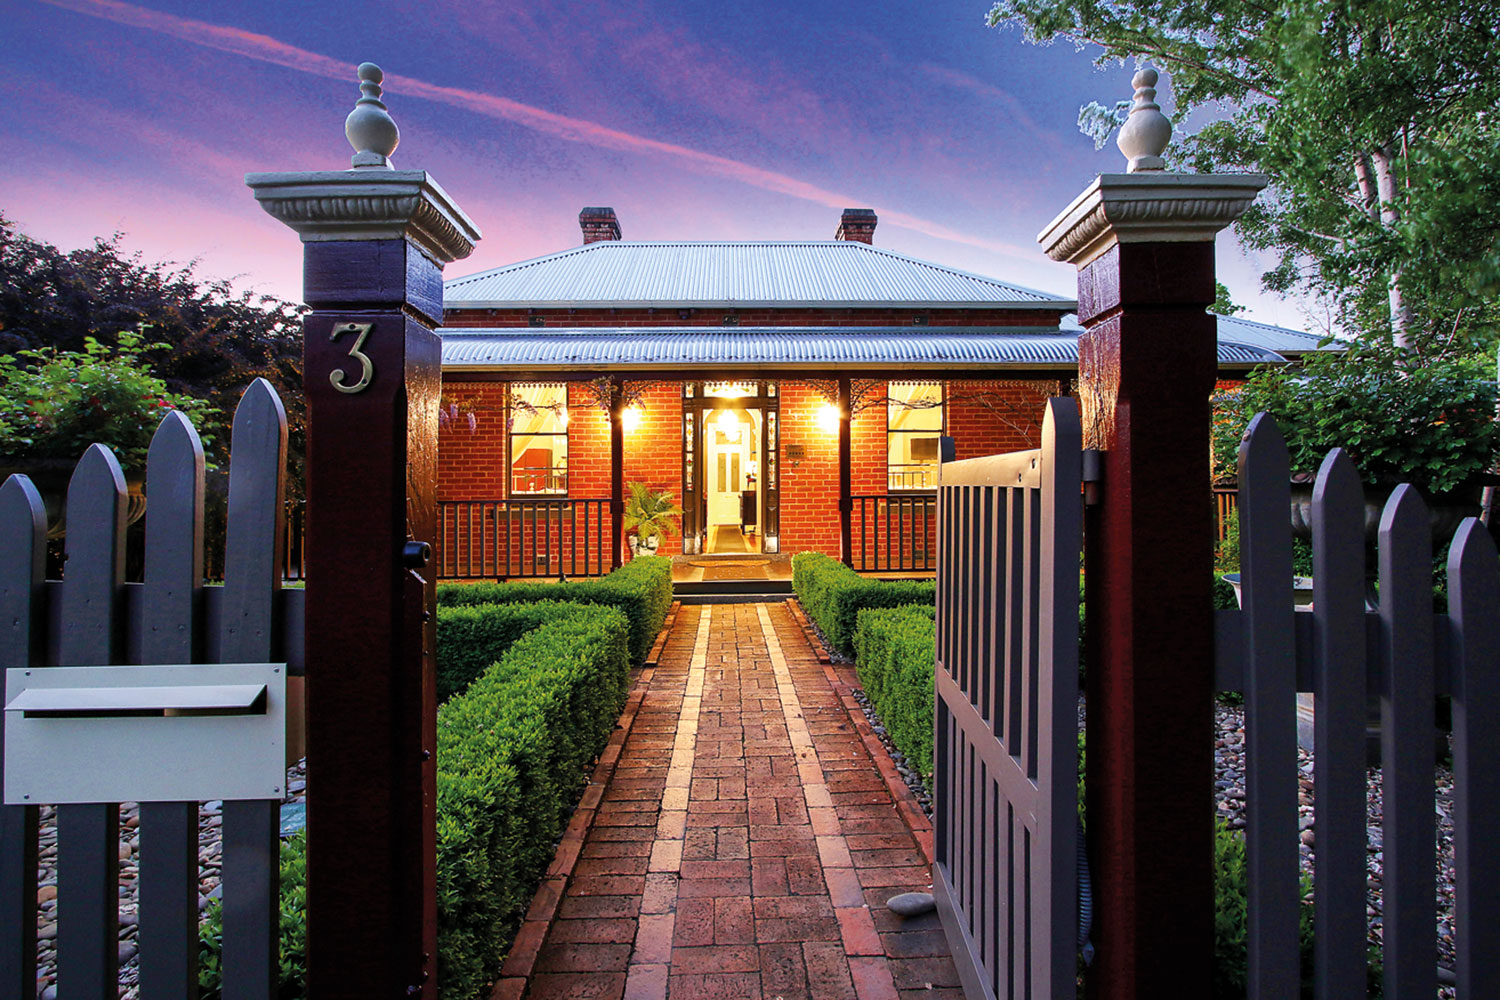 Finches of Beechworth is on the Market